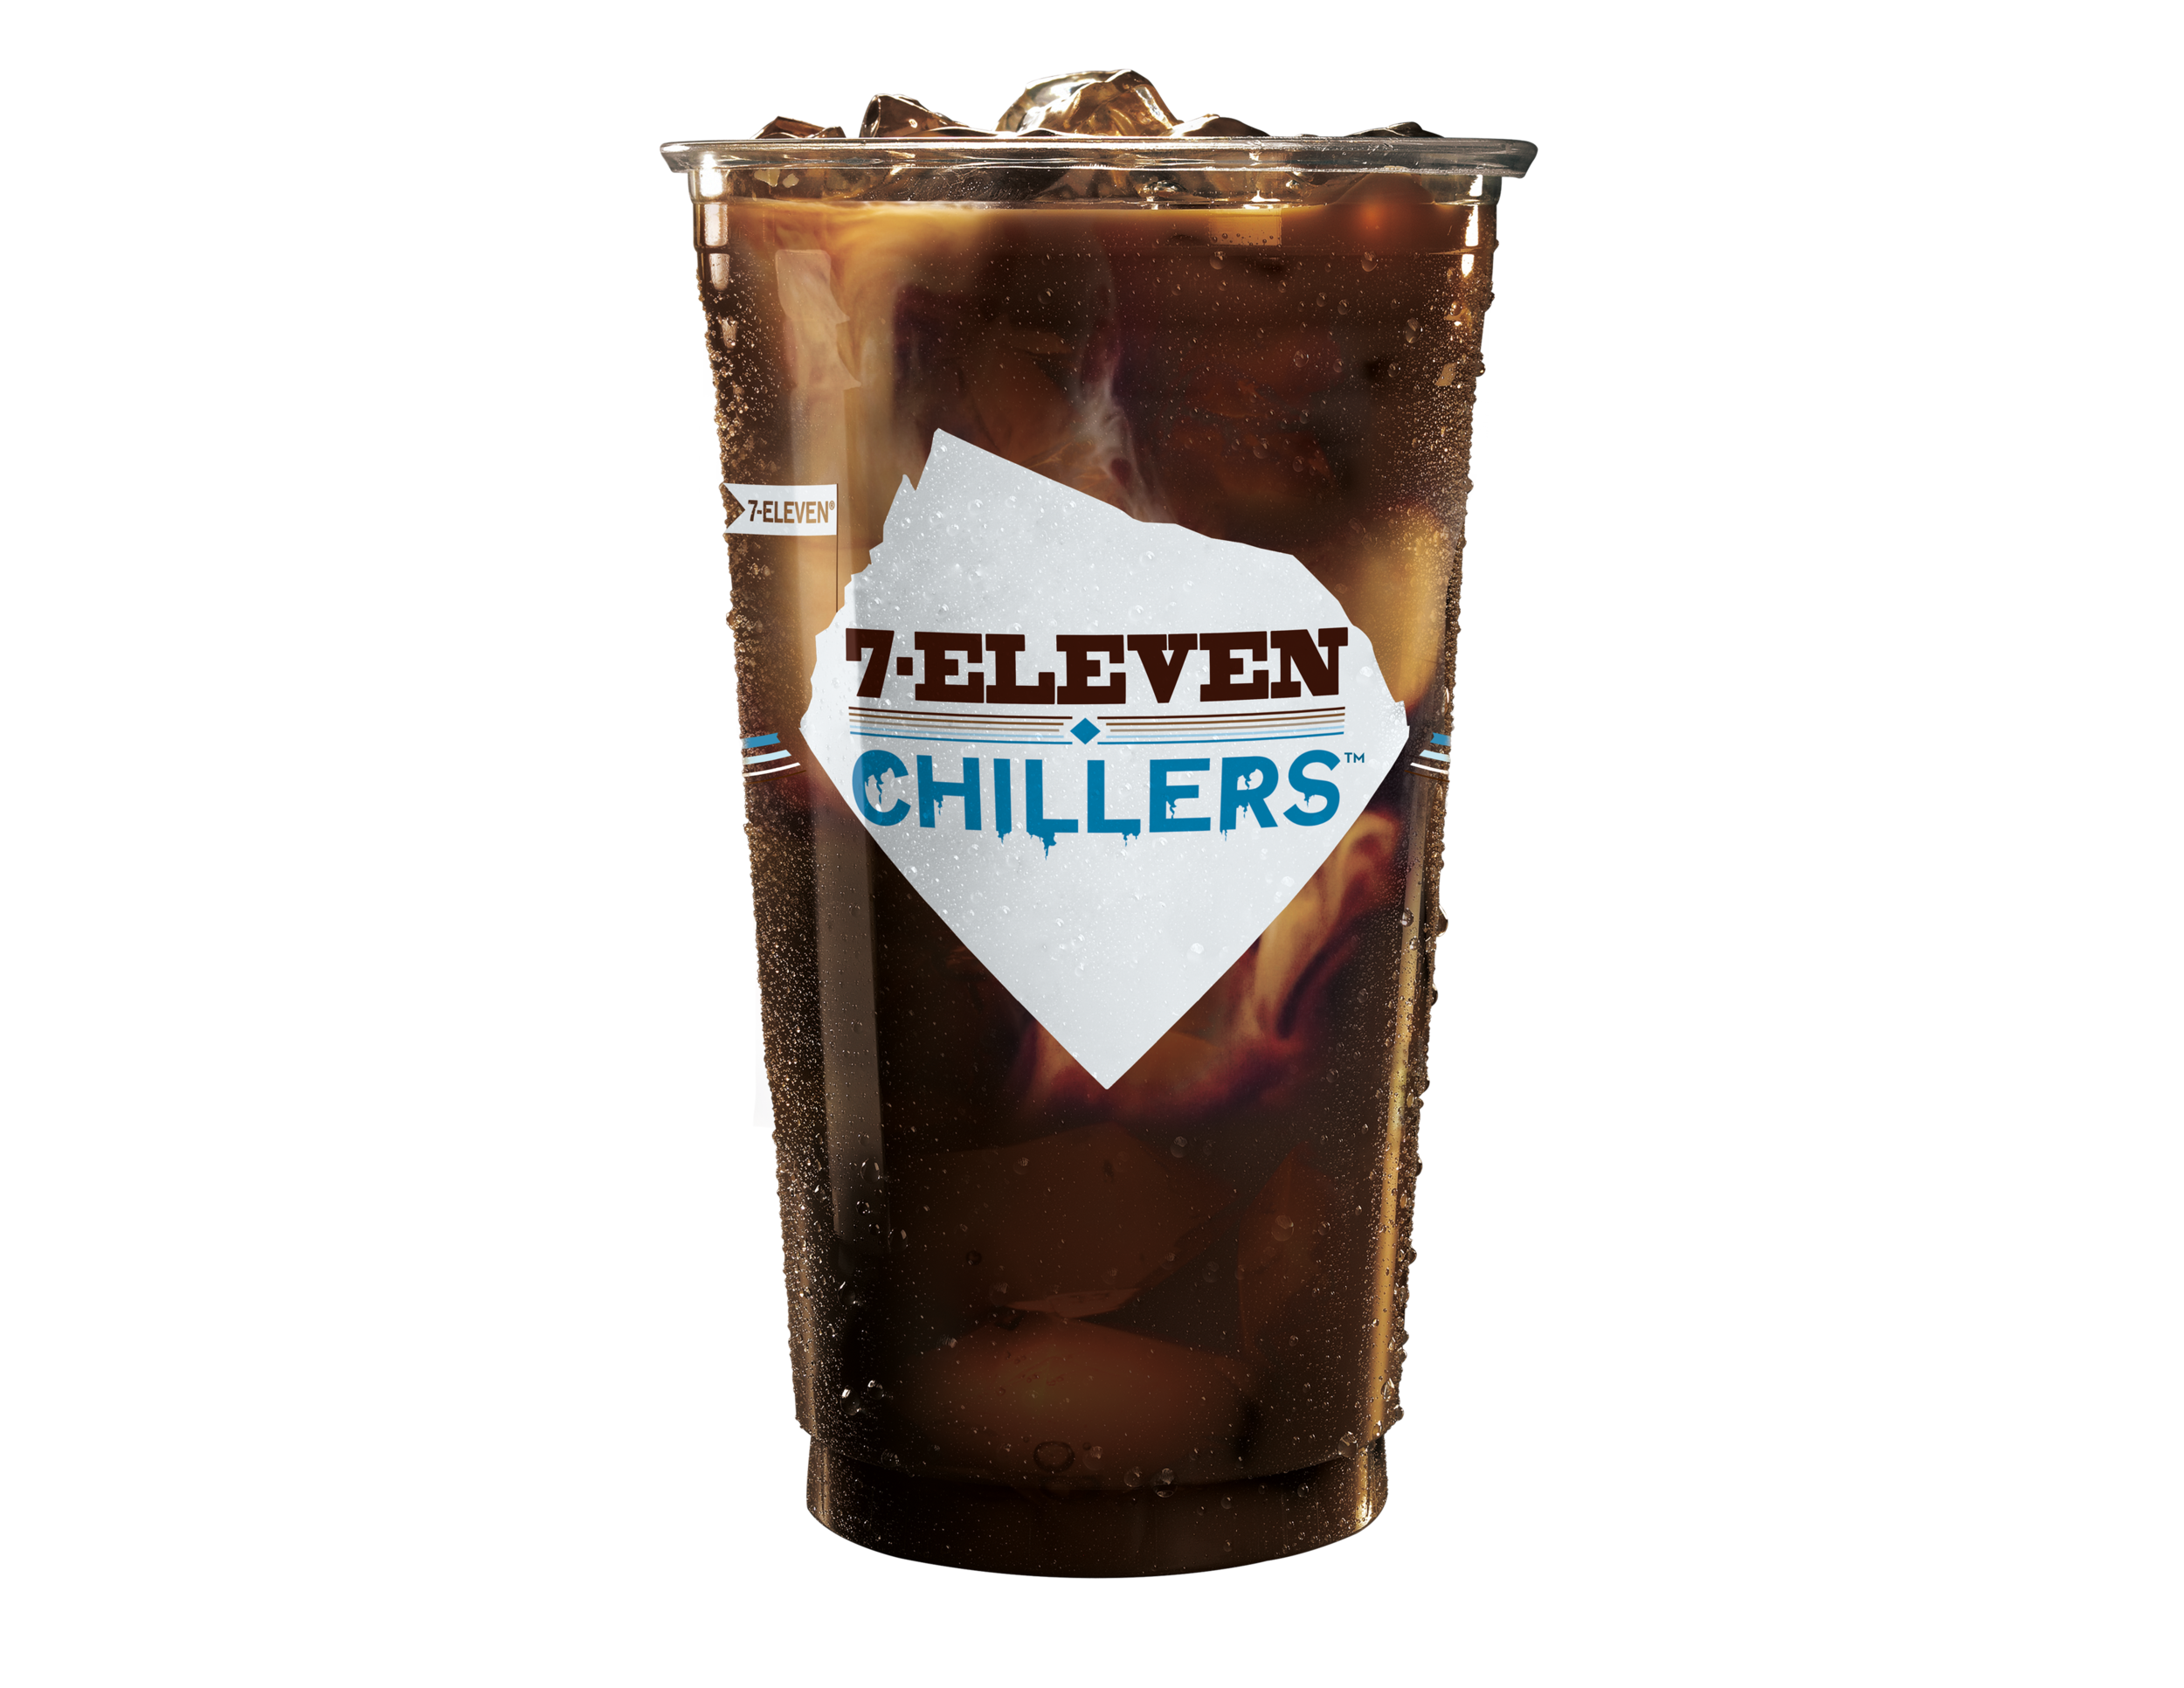 7 ELEVEN ICED COFFEE CUPS